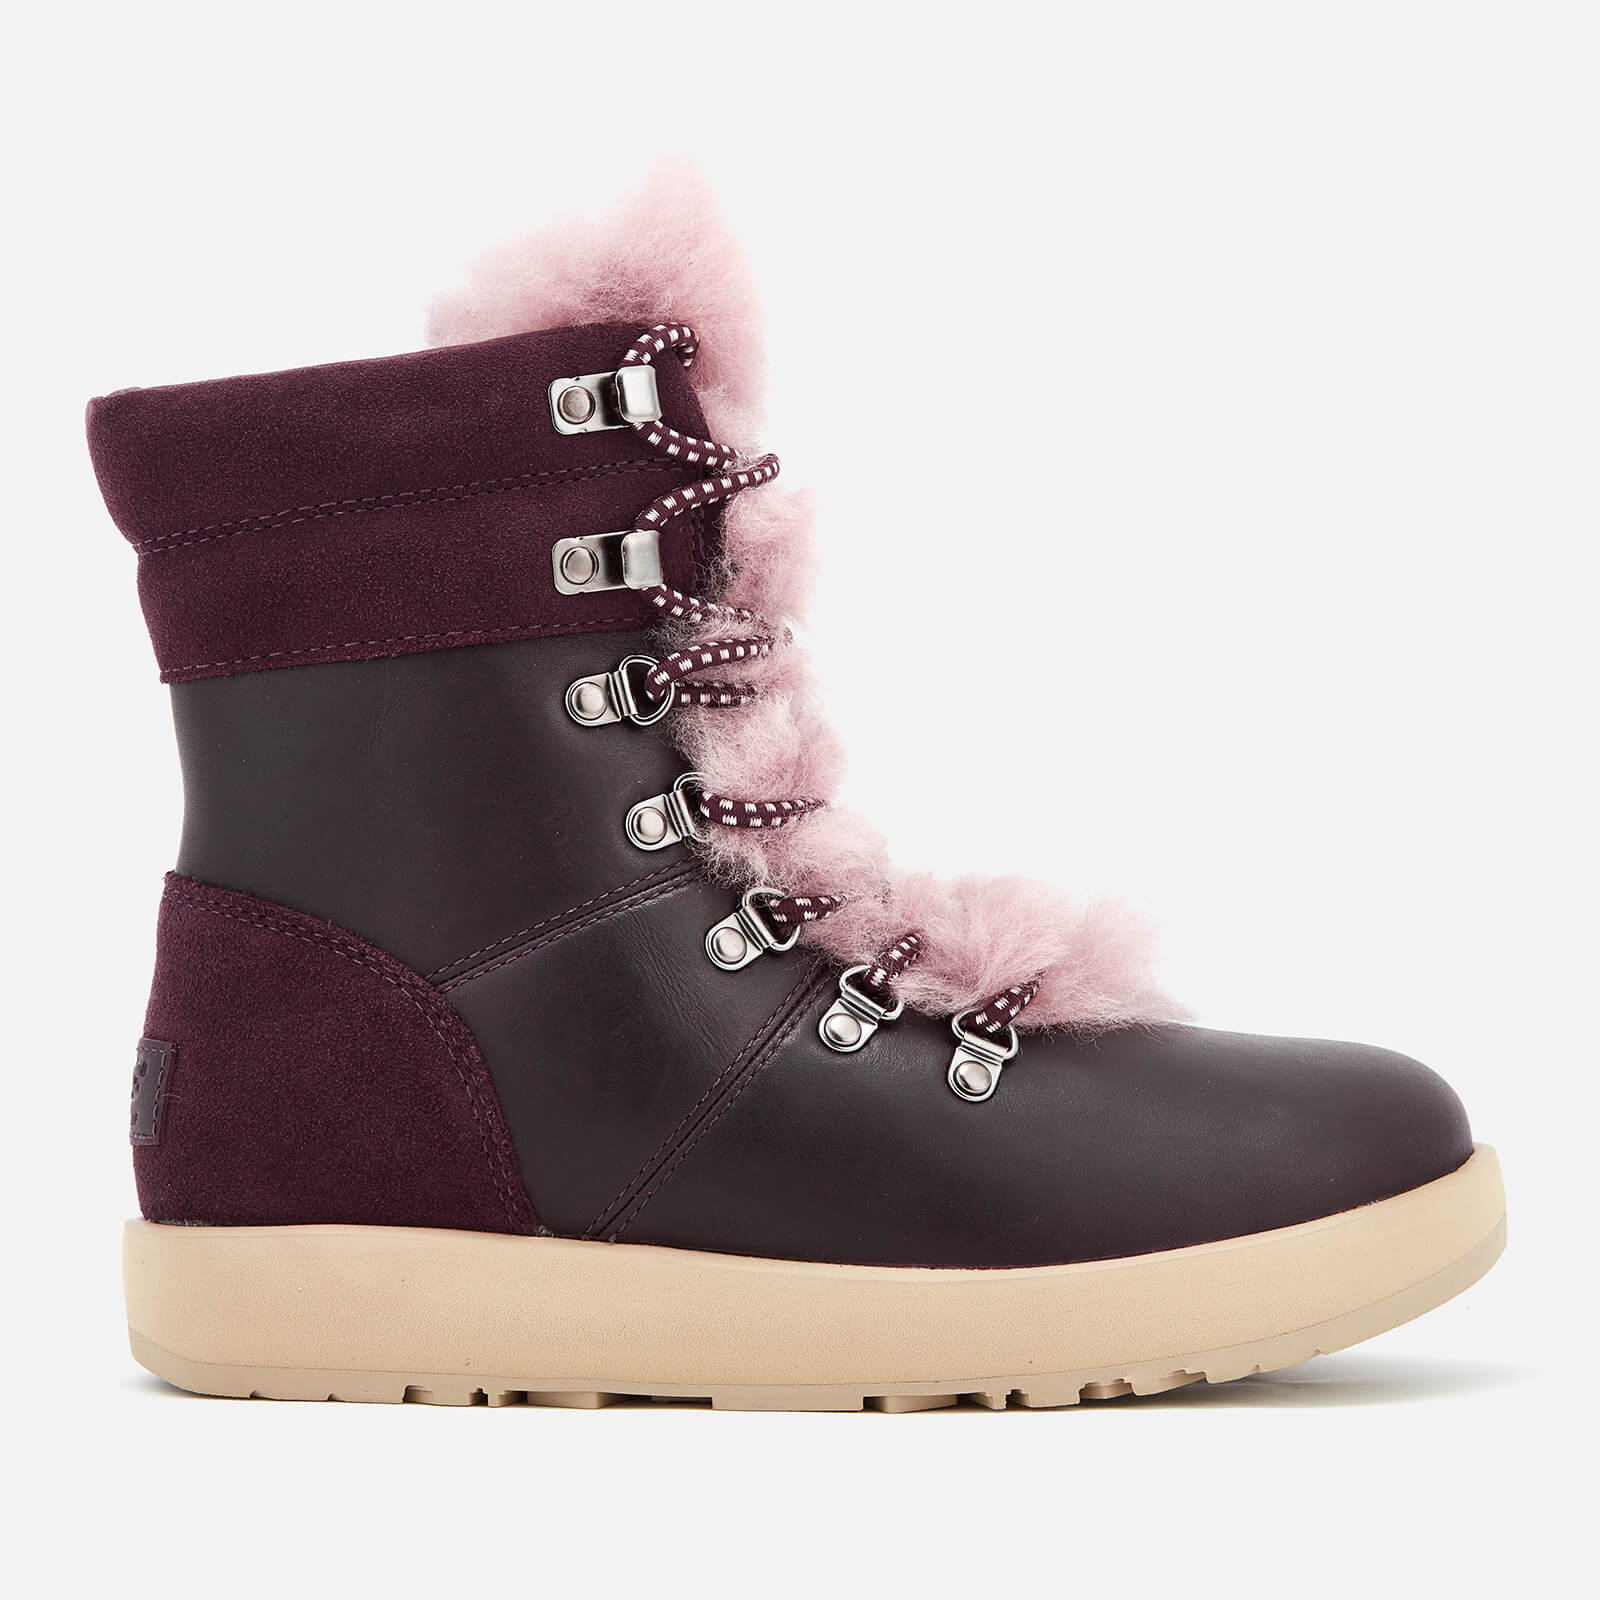 de934f48dcf UGG Women's Viki Waterproof Leather Lace Up Boots - Port